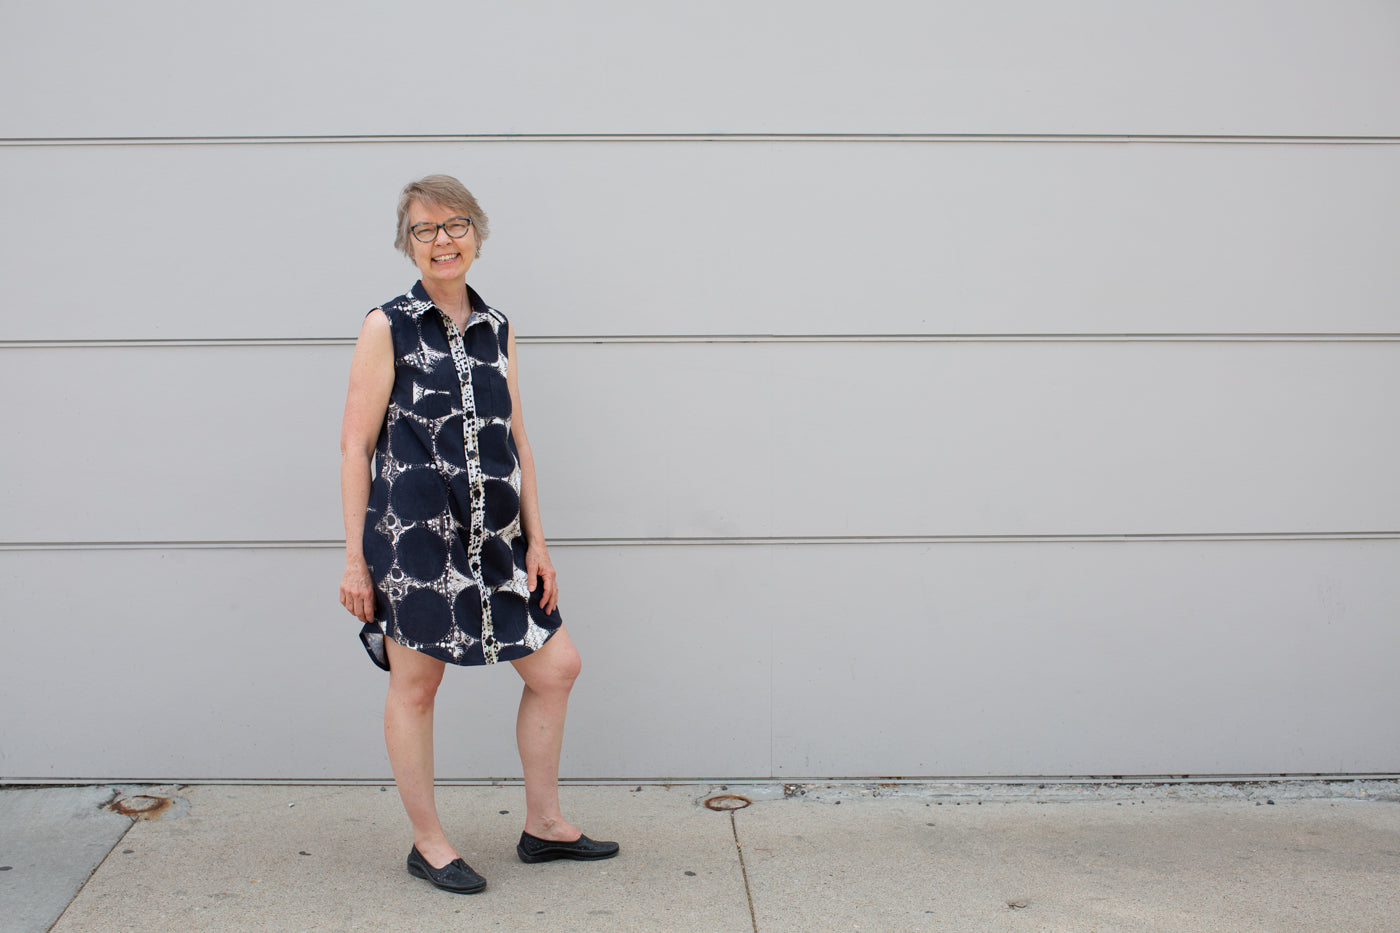 Aleks wearing a sun dress in front of a light grey wall, looking at the camera smiling.